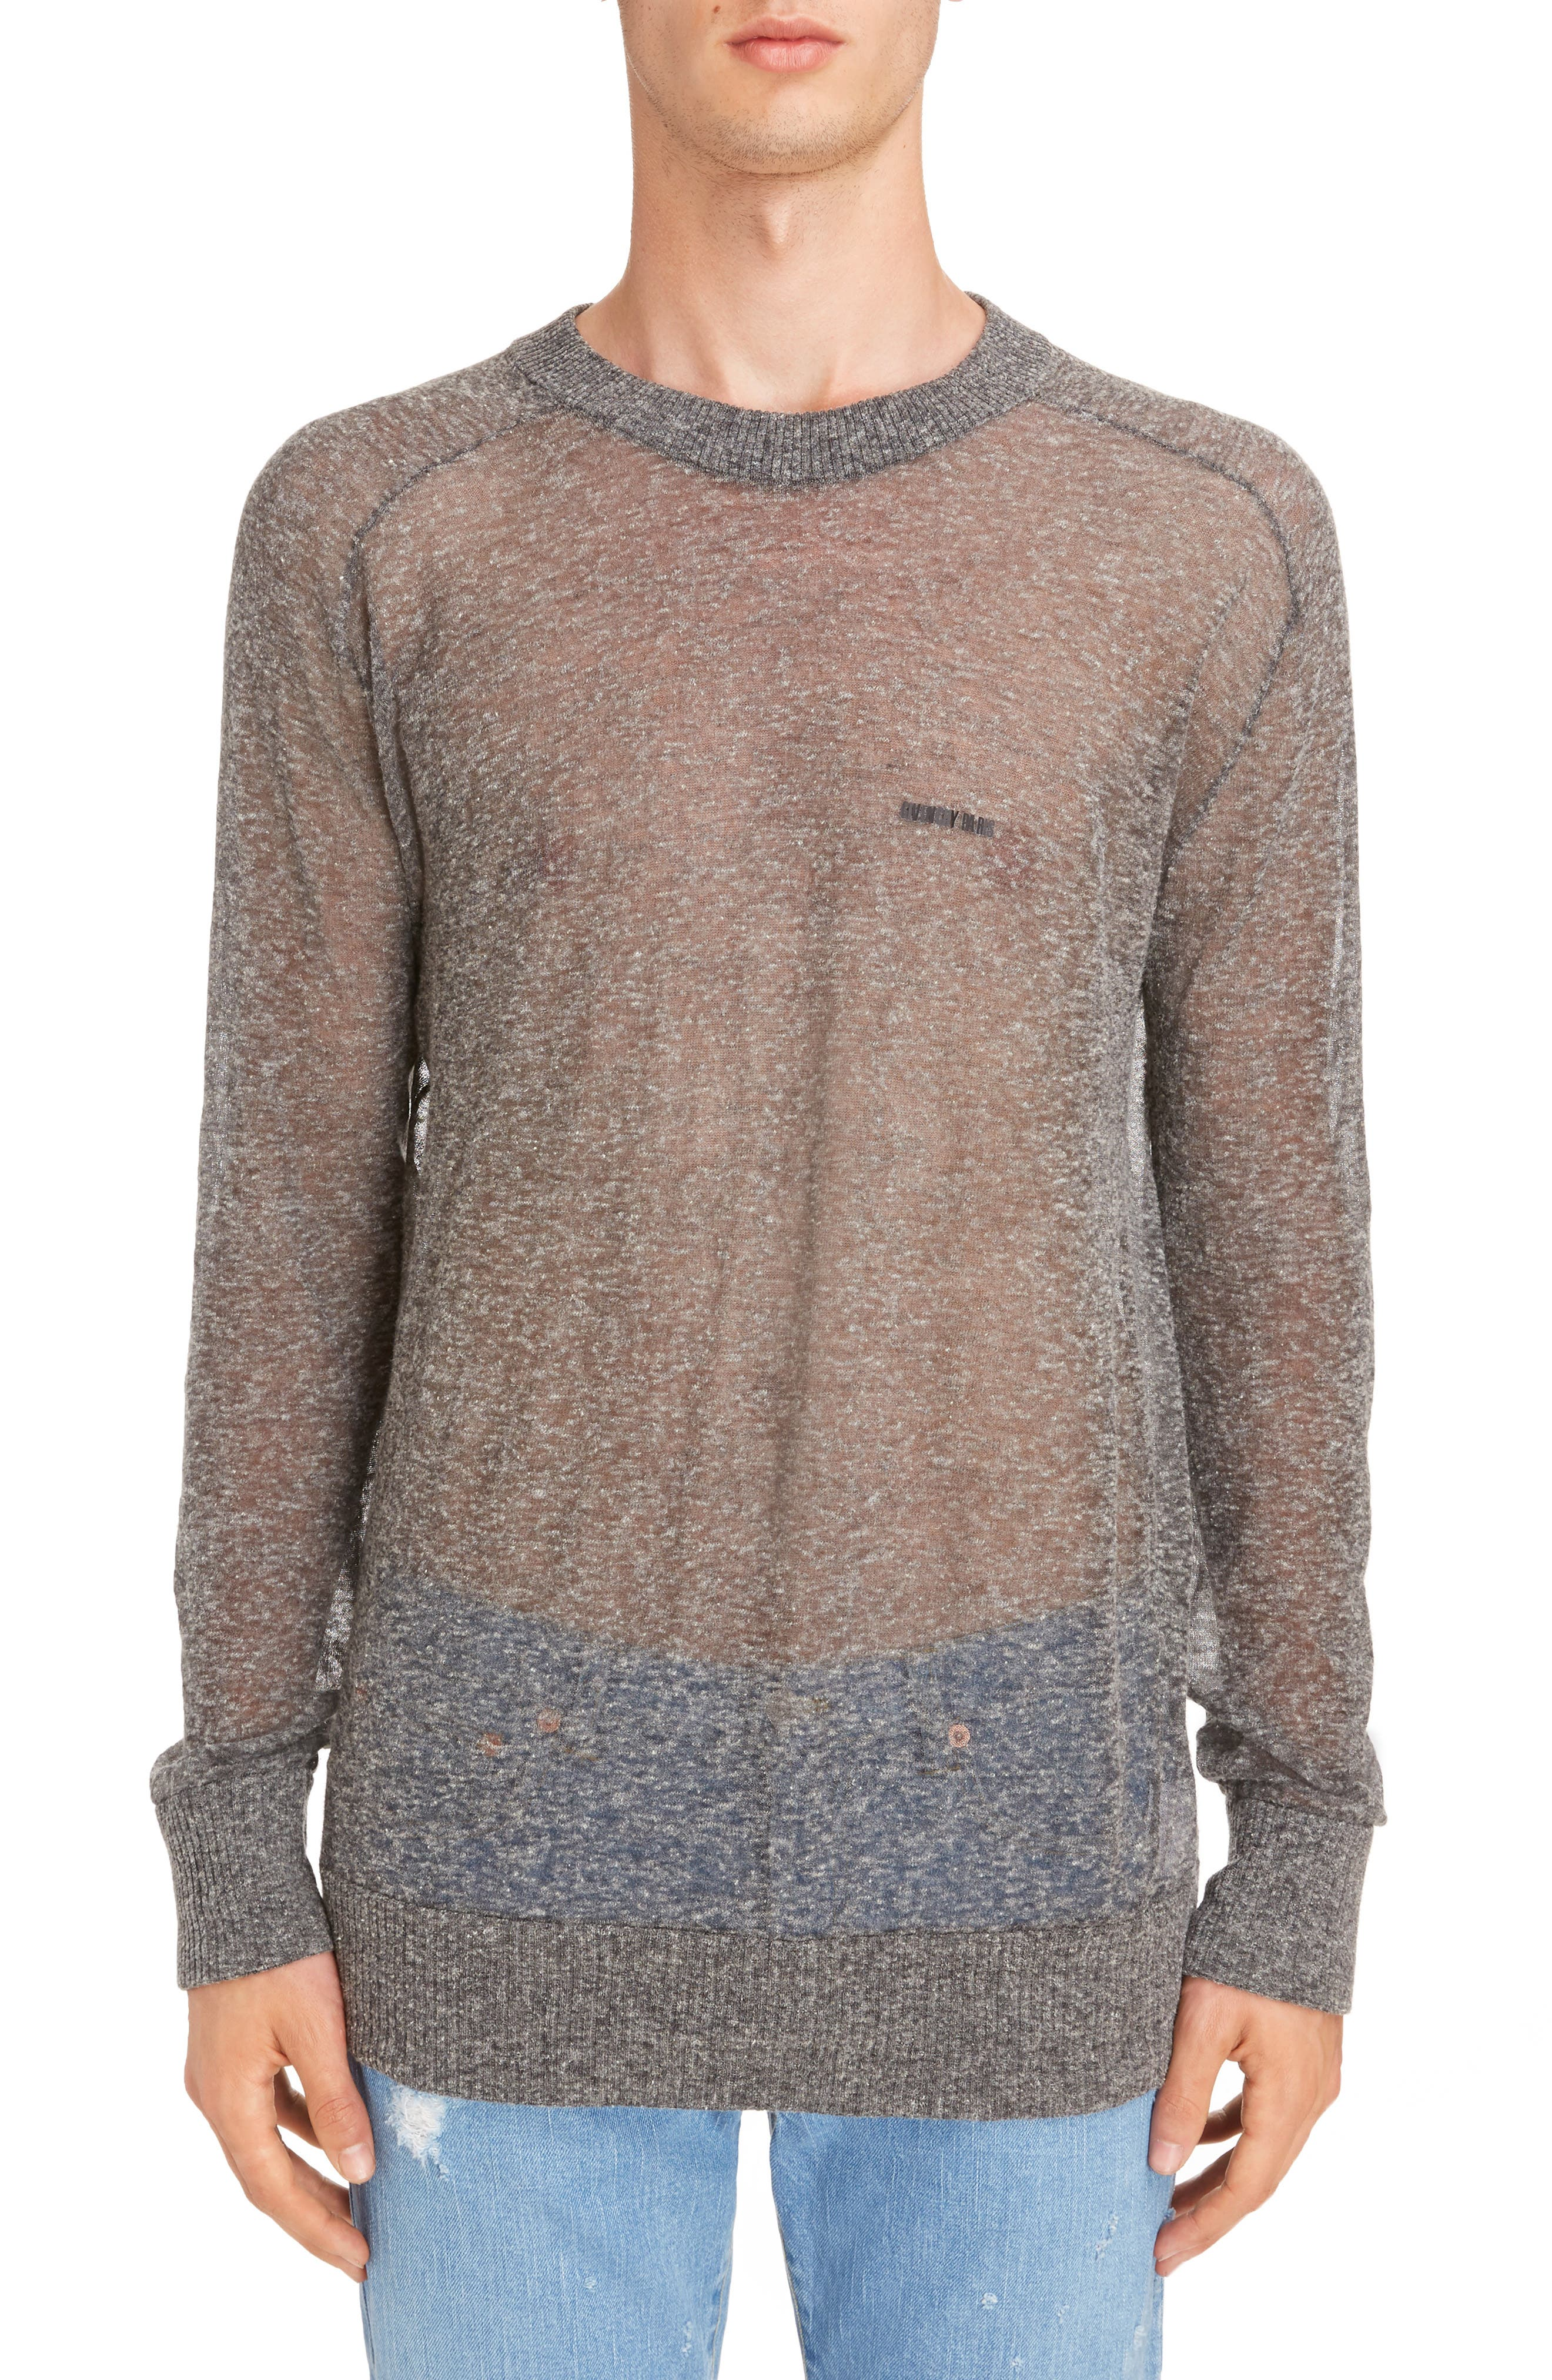 Technical Linen Blend Crewneck Sweater,                             Main thumbnail 1, color,                             020